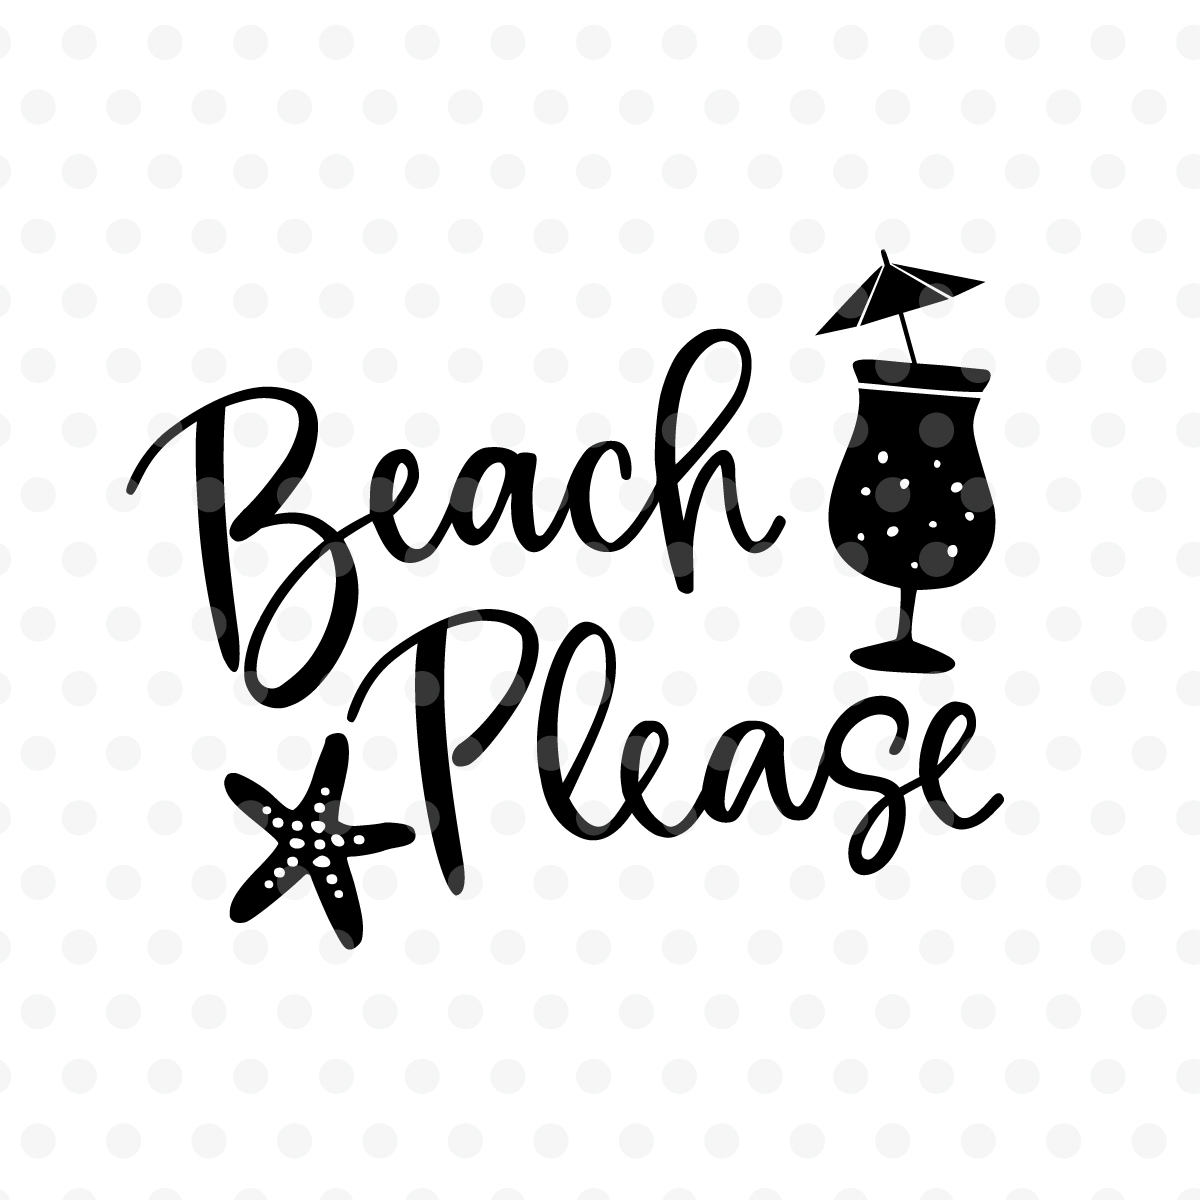 beach please svg #1017, Download drawings